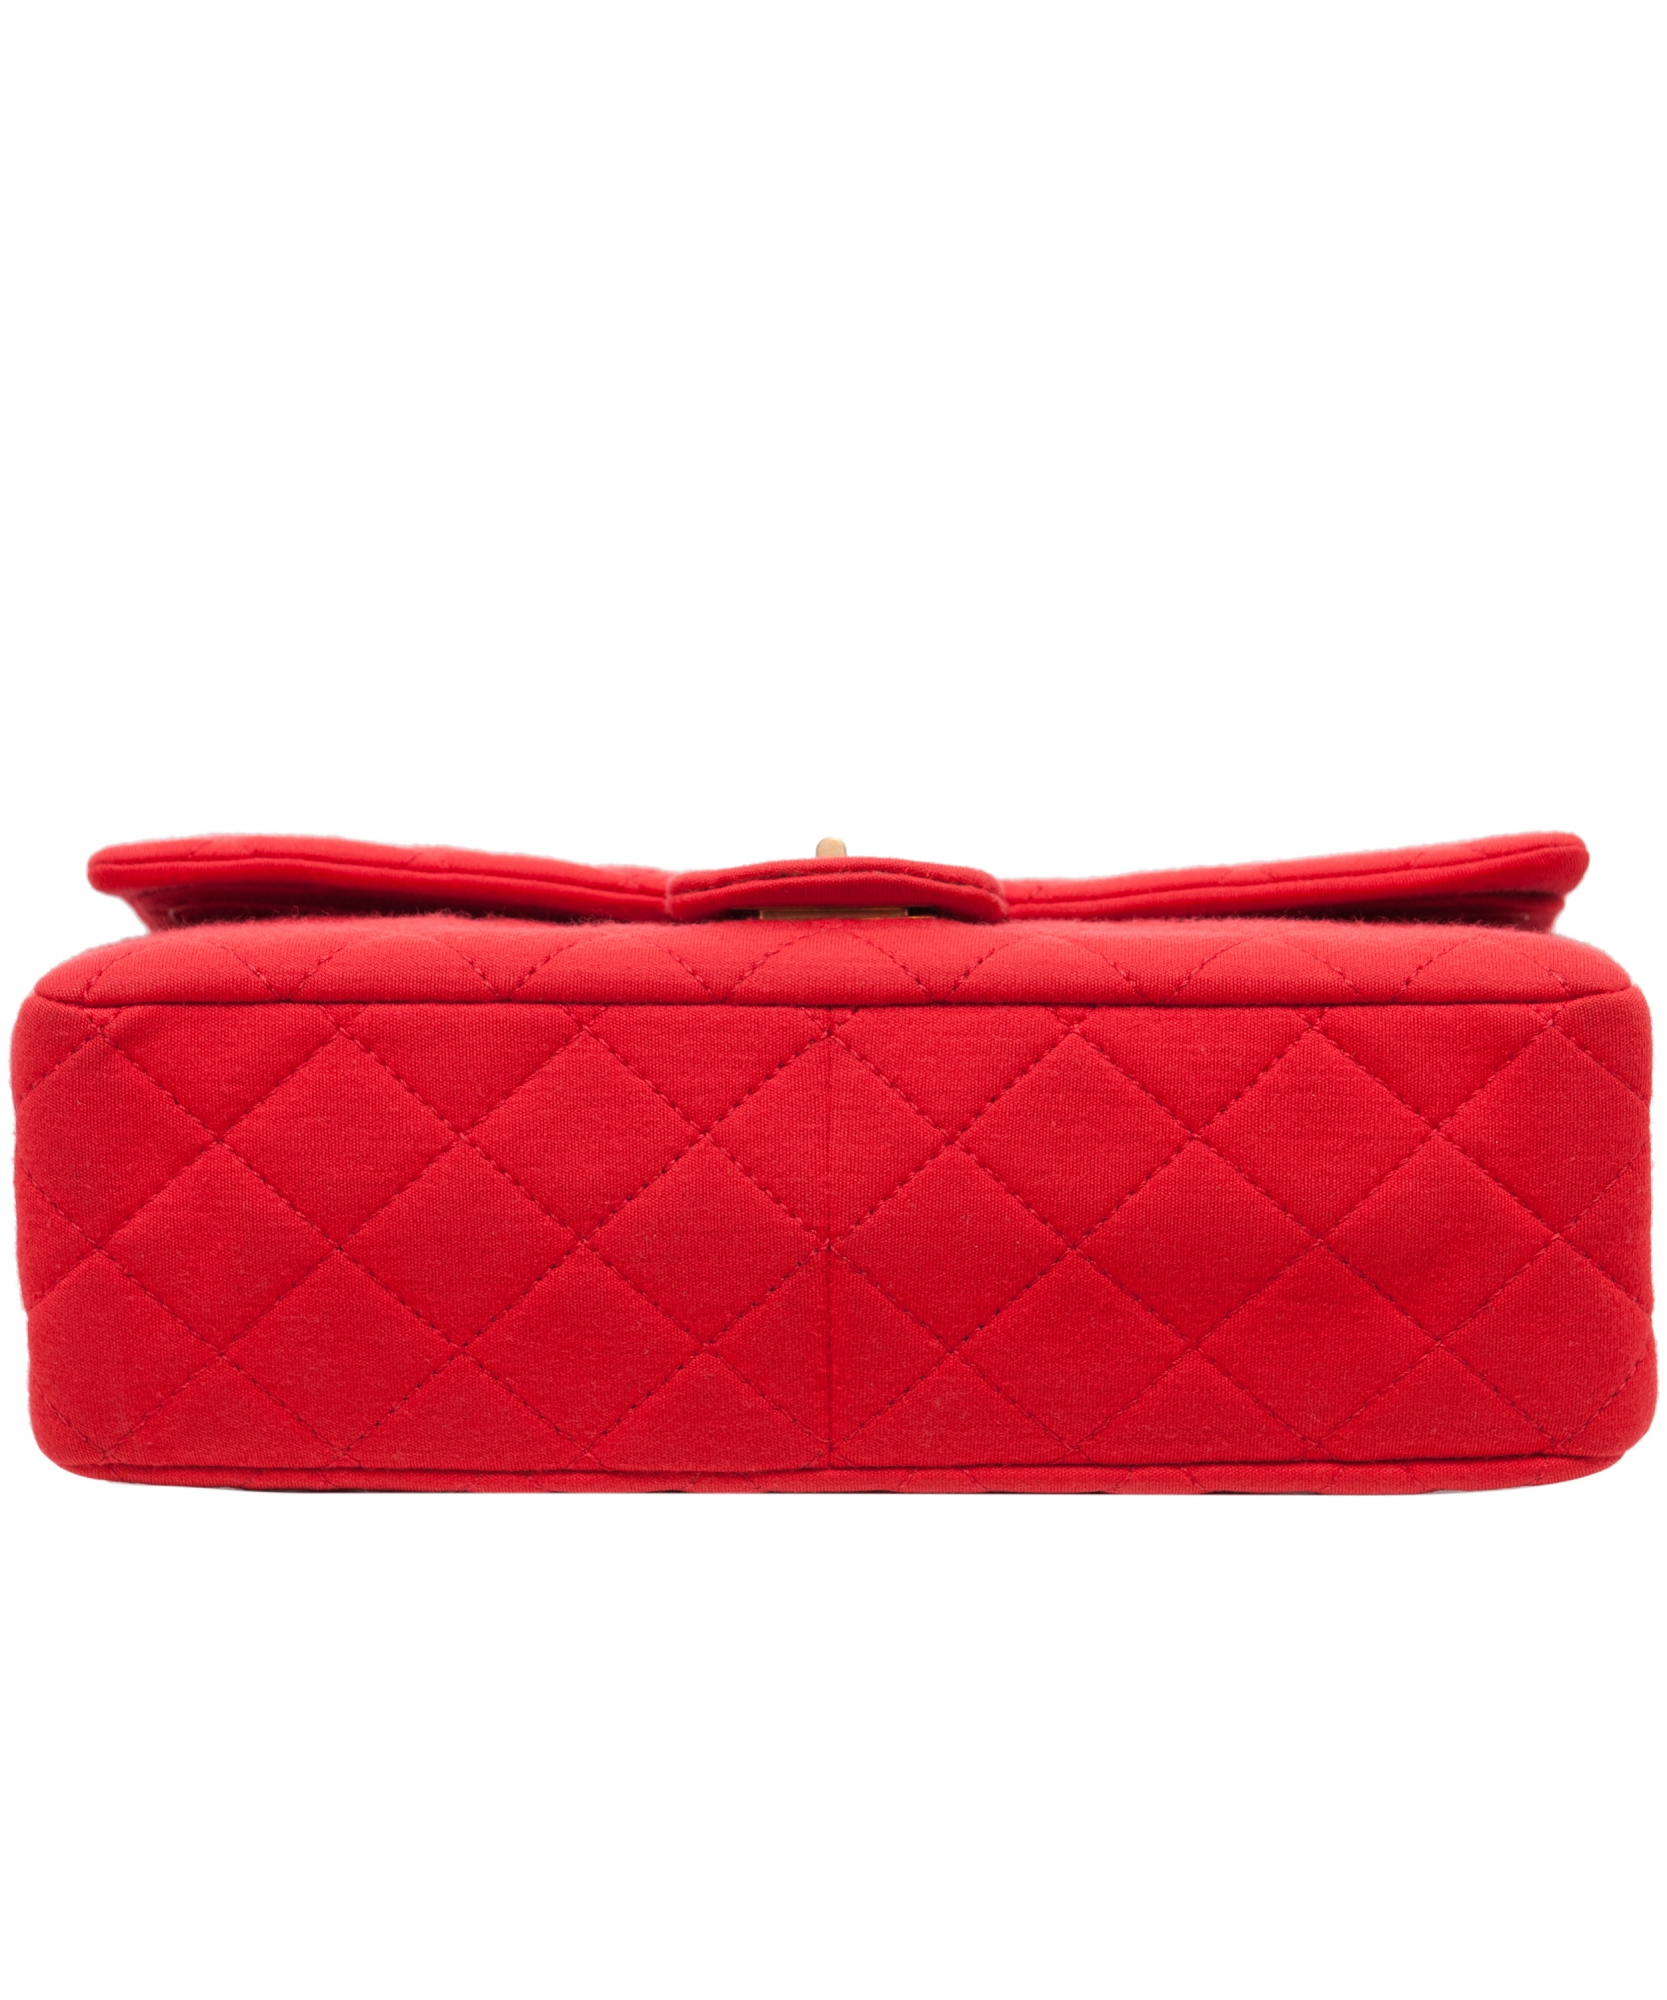 56304ec4901a Chanel Red 2.55 Reissue Quilted Classic Jersey 227 Jumbo Flap Bag ...